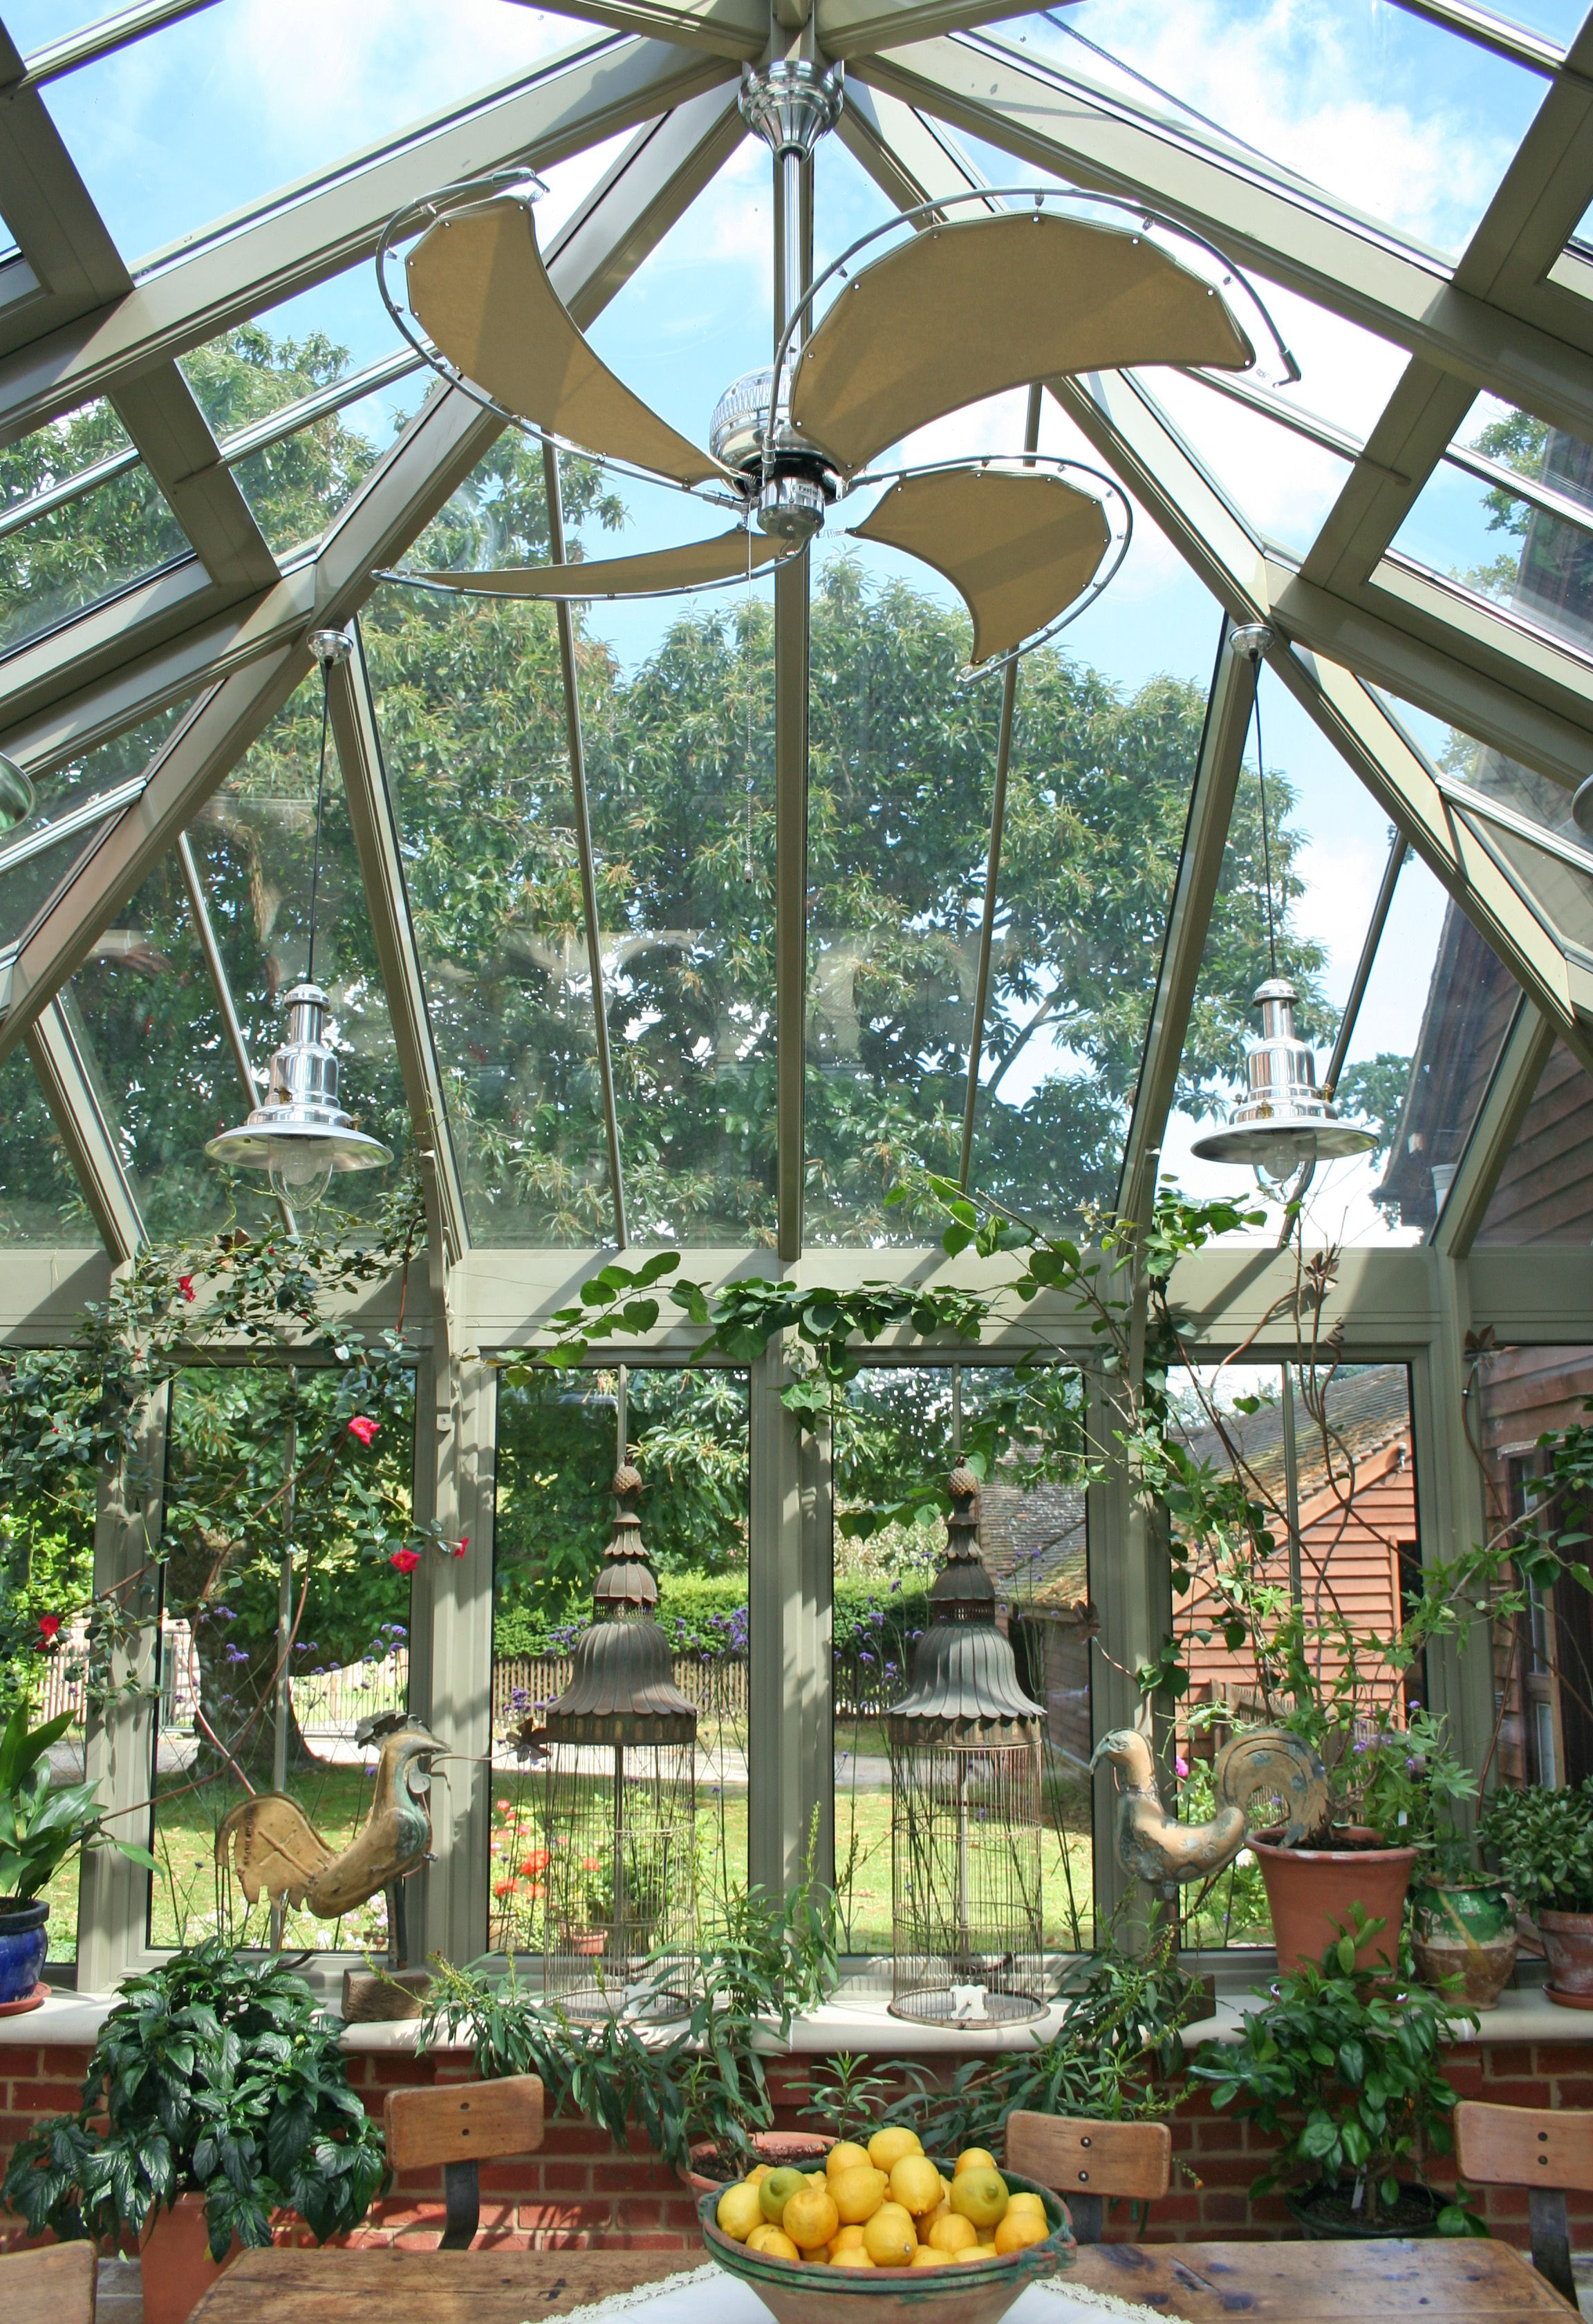 Green Room Garden Design: Think Carefully About Conservatory Colour. This Olive